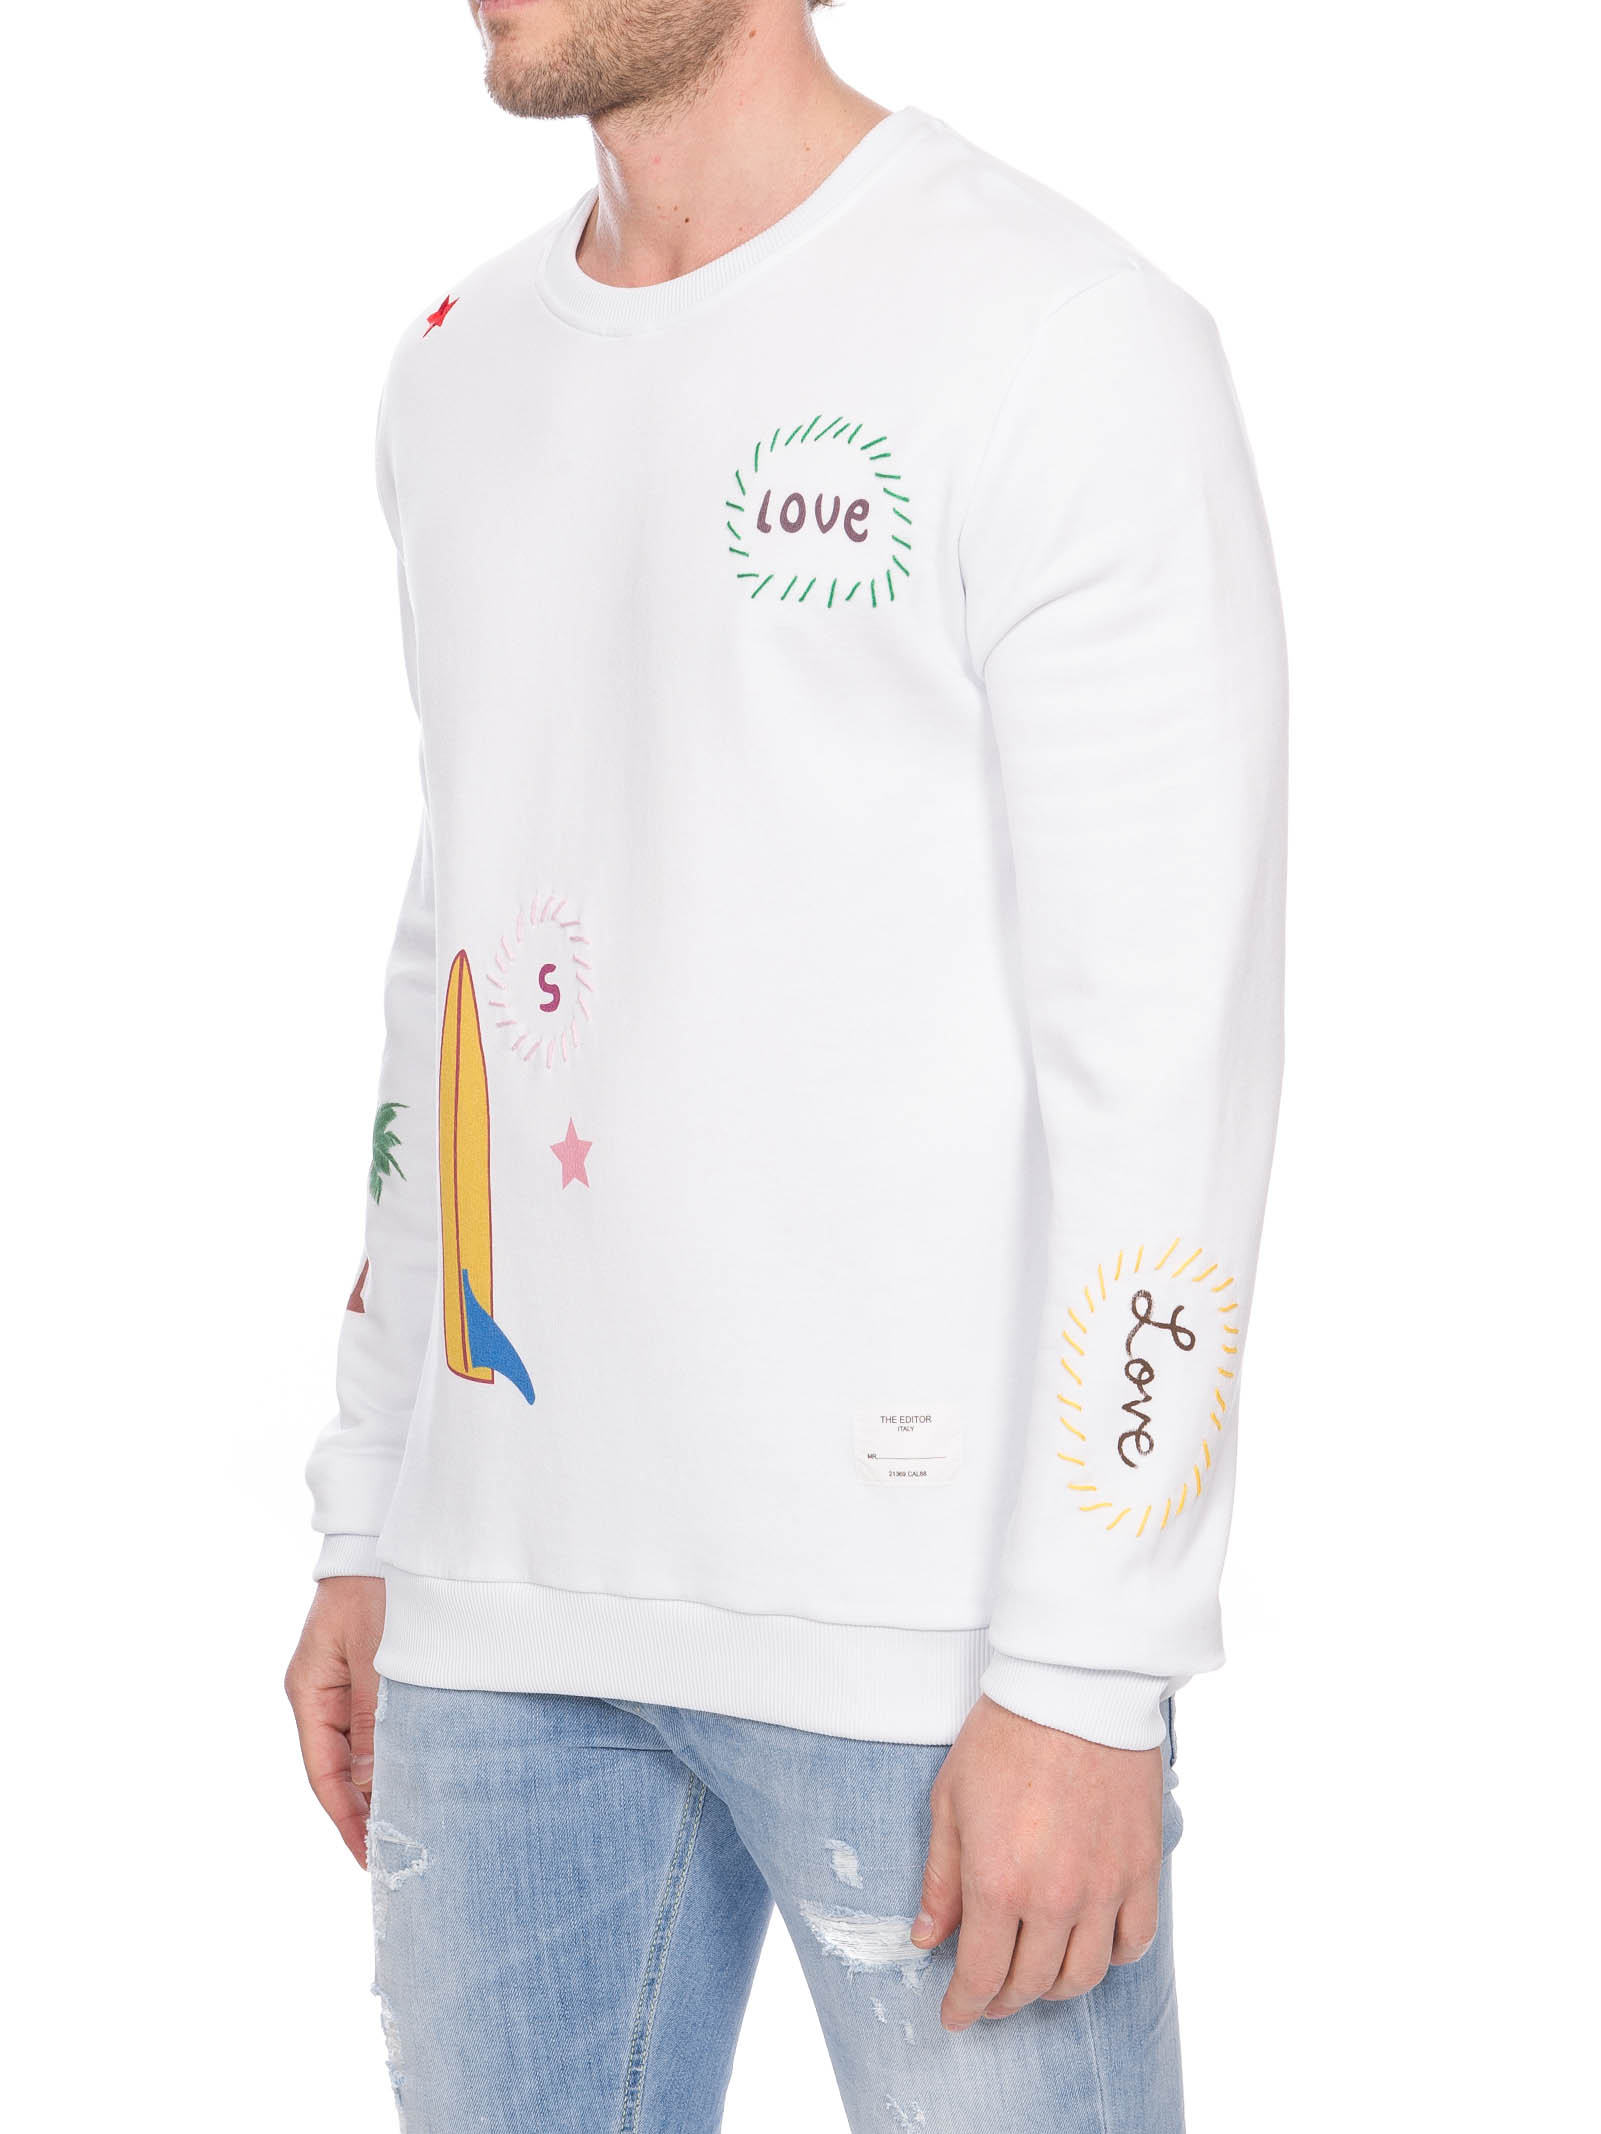 WHITE COTTON SWEATSHIRT WITH PRINT AND EMBROIDERY THE EDITOR | Sweatshirts | E806A38N11120001